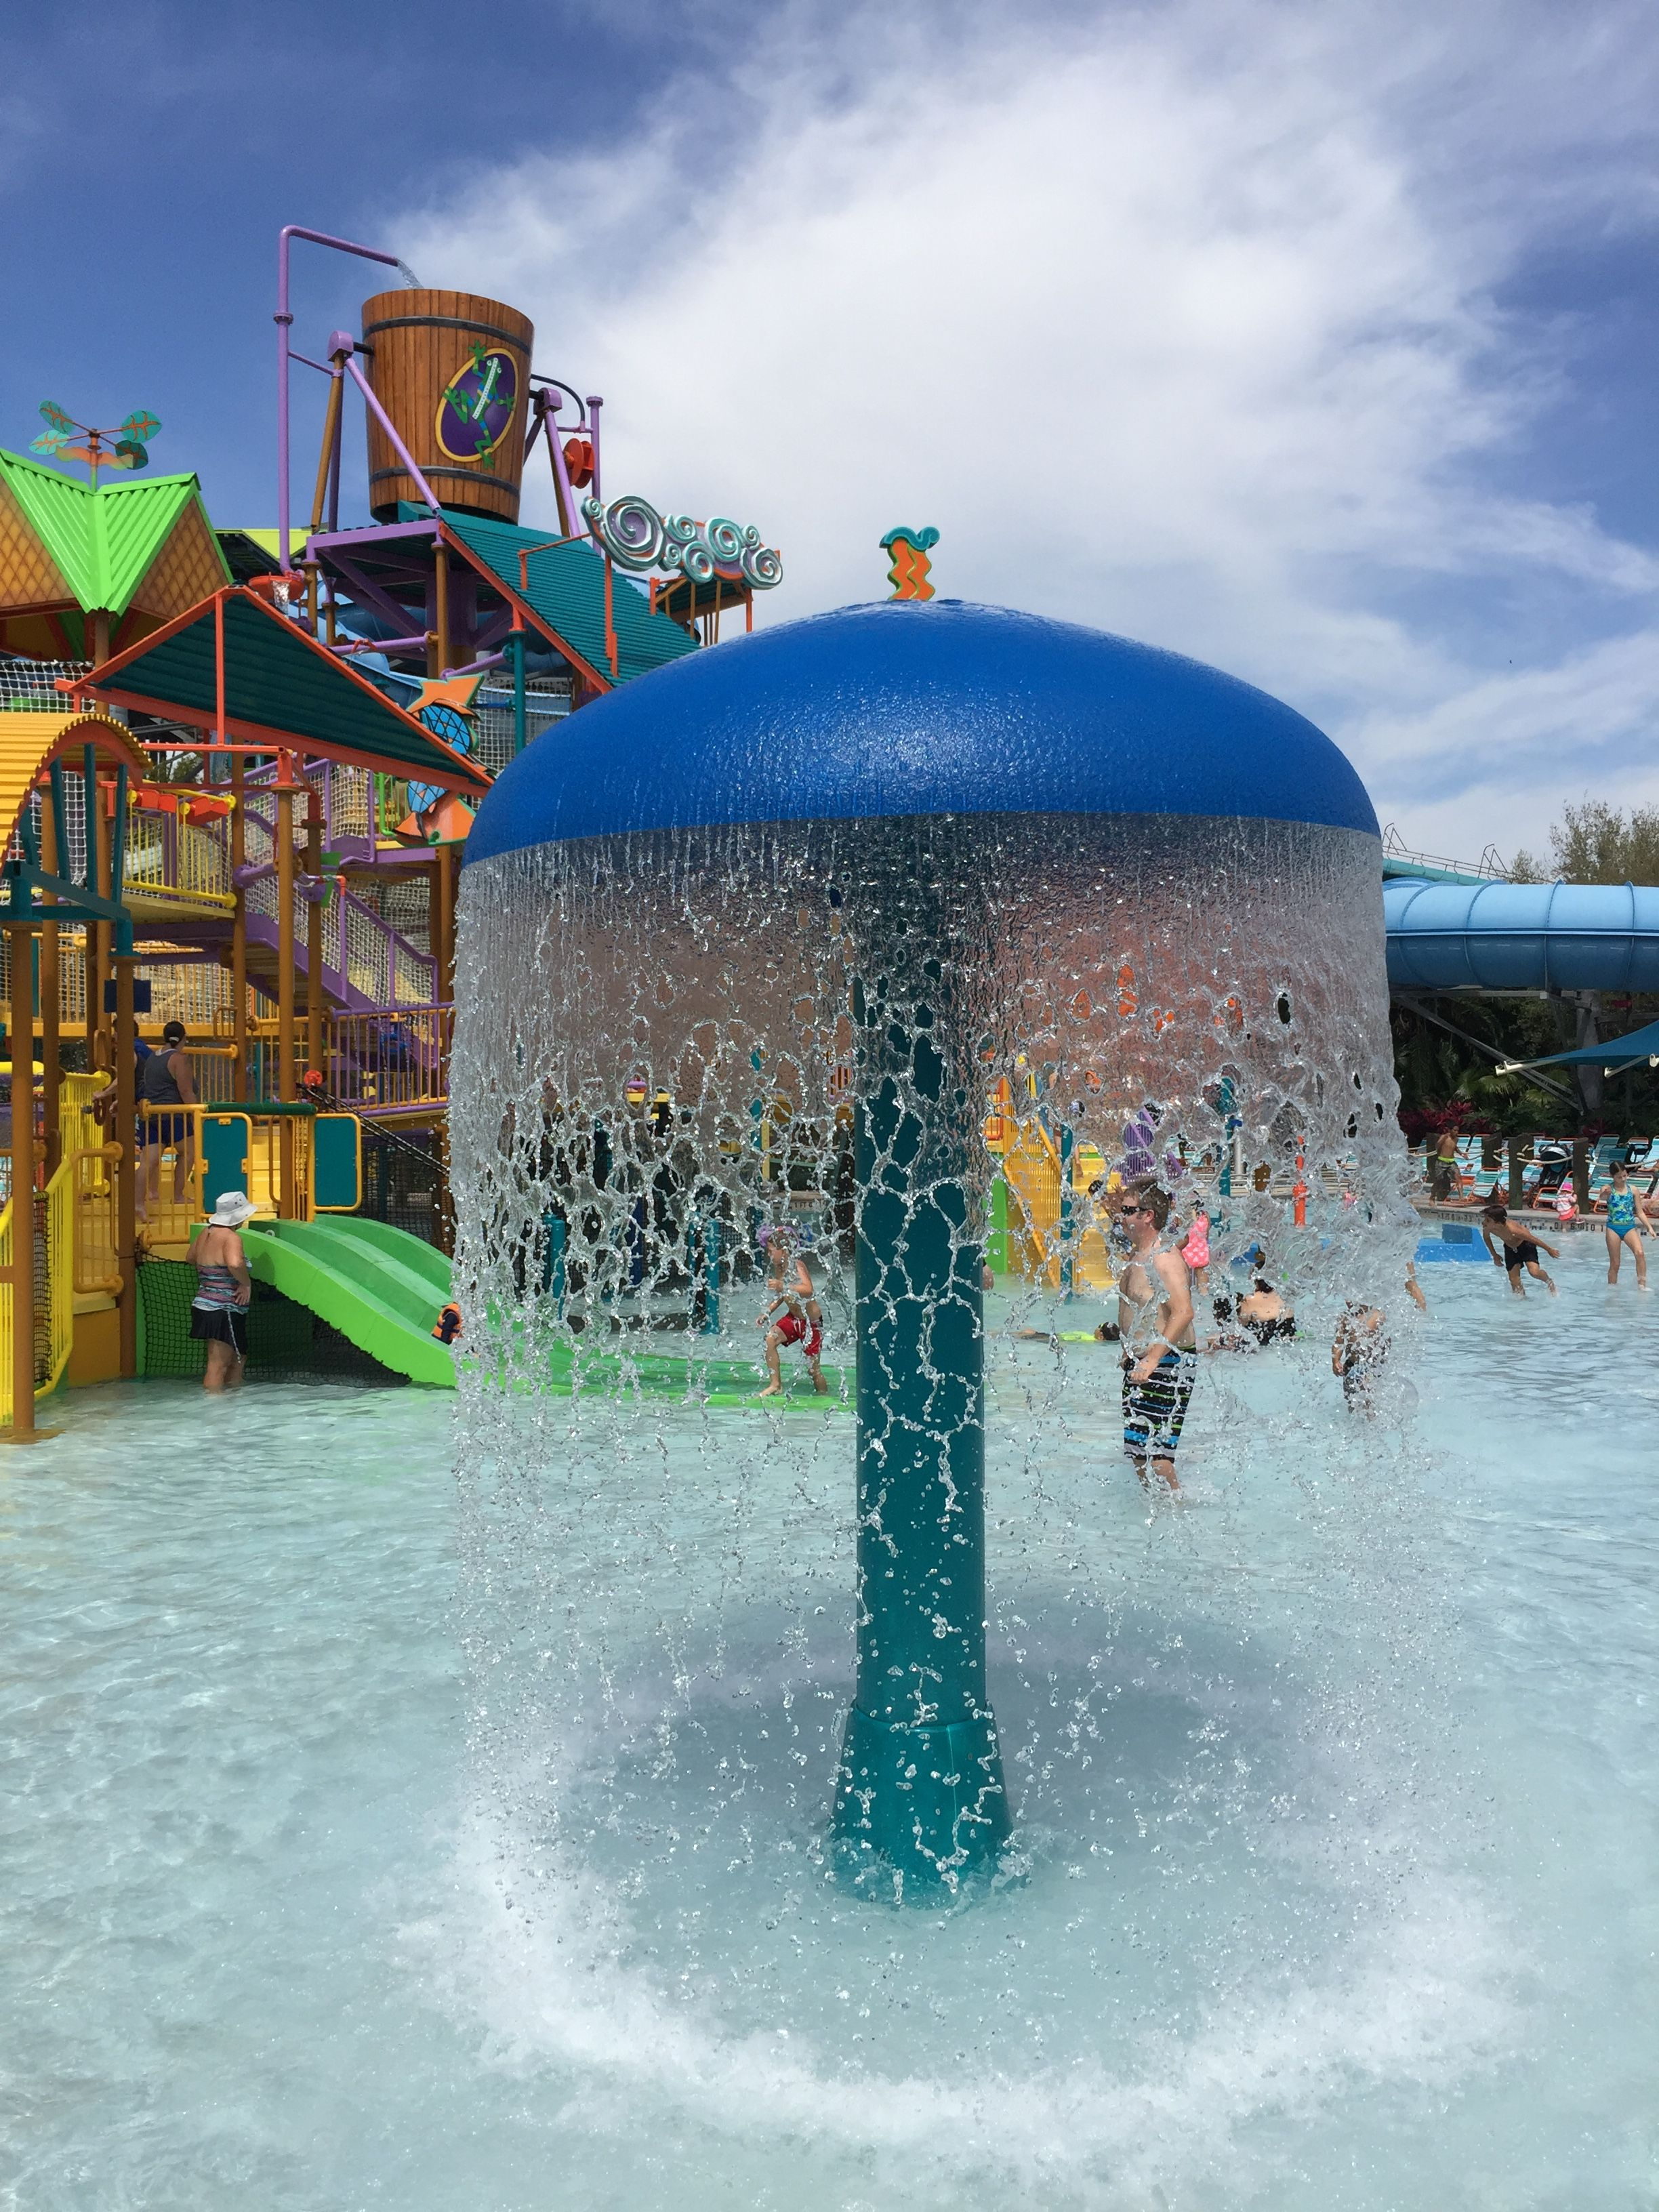 Walkabout Waters At Aquatica Is The Best Play Area For Kids Families Find Lots Of Shaded Seating And Severa Happiest Place On Earth Aquatica Orlando Walkabout